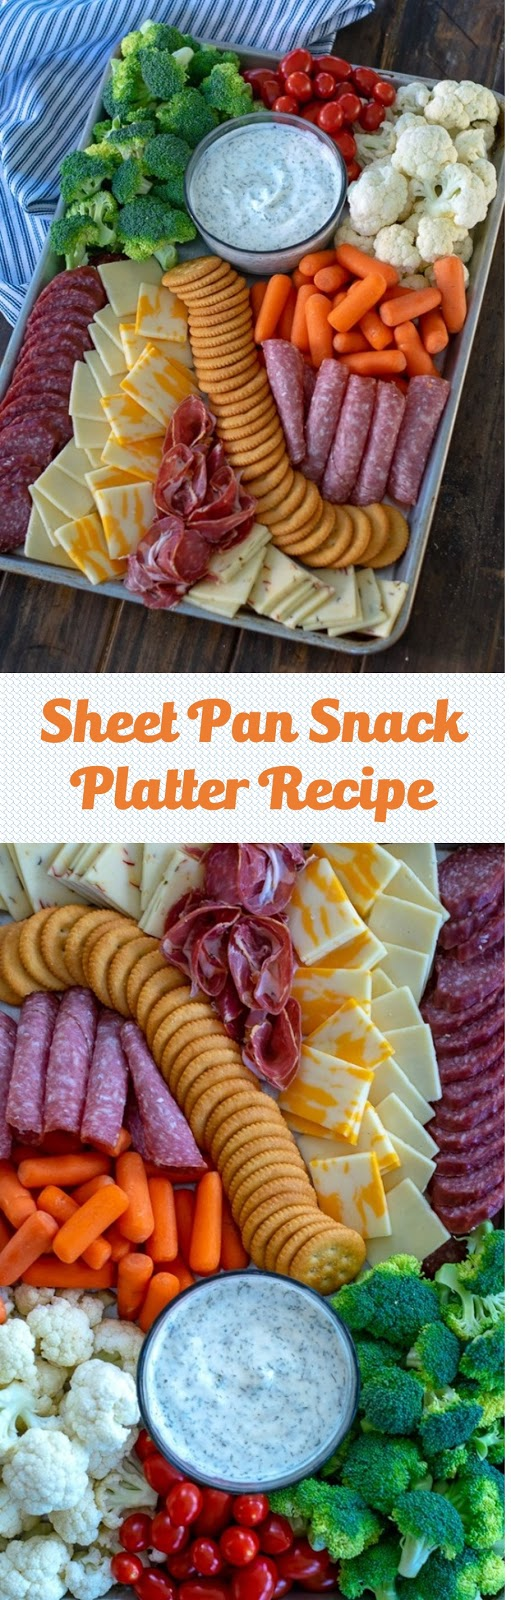 Sheet Pan Snack Platter Recipe